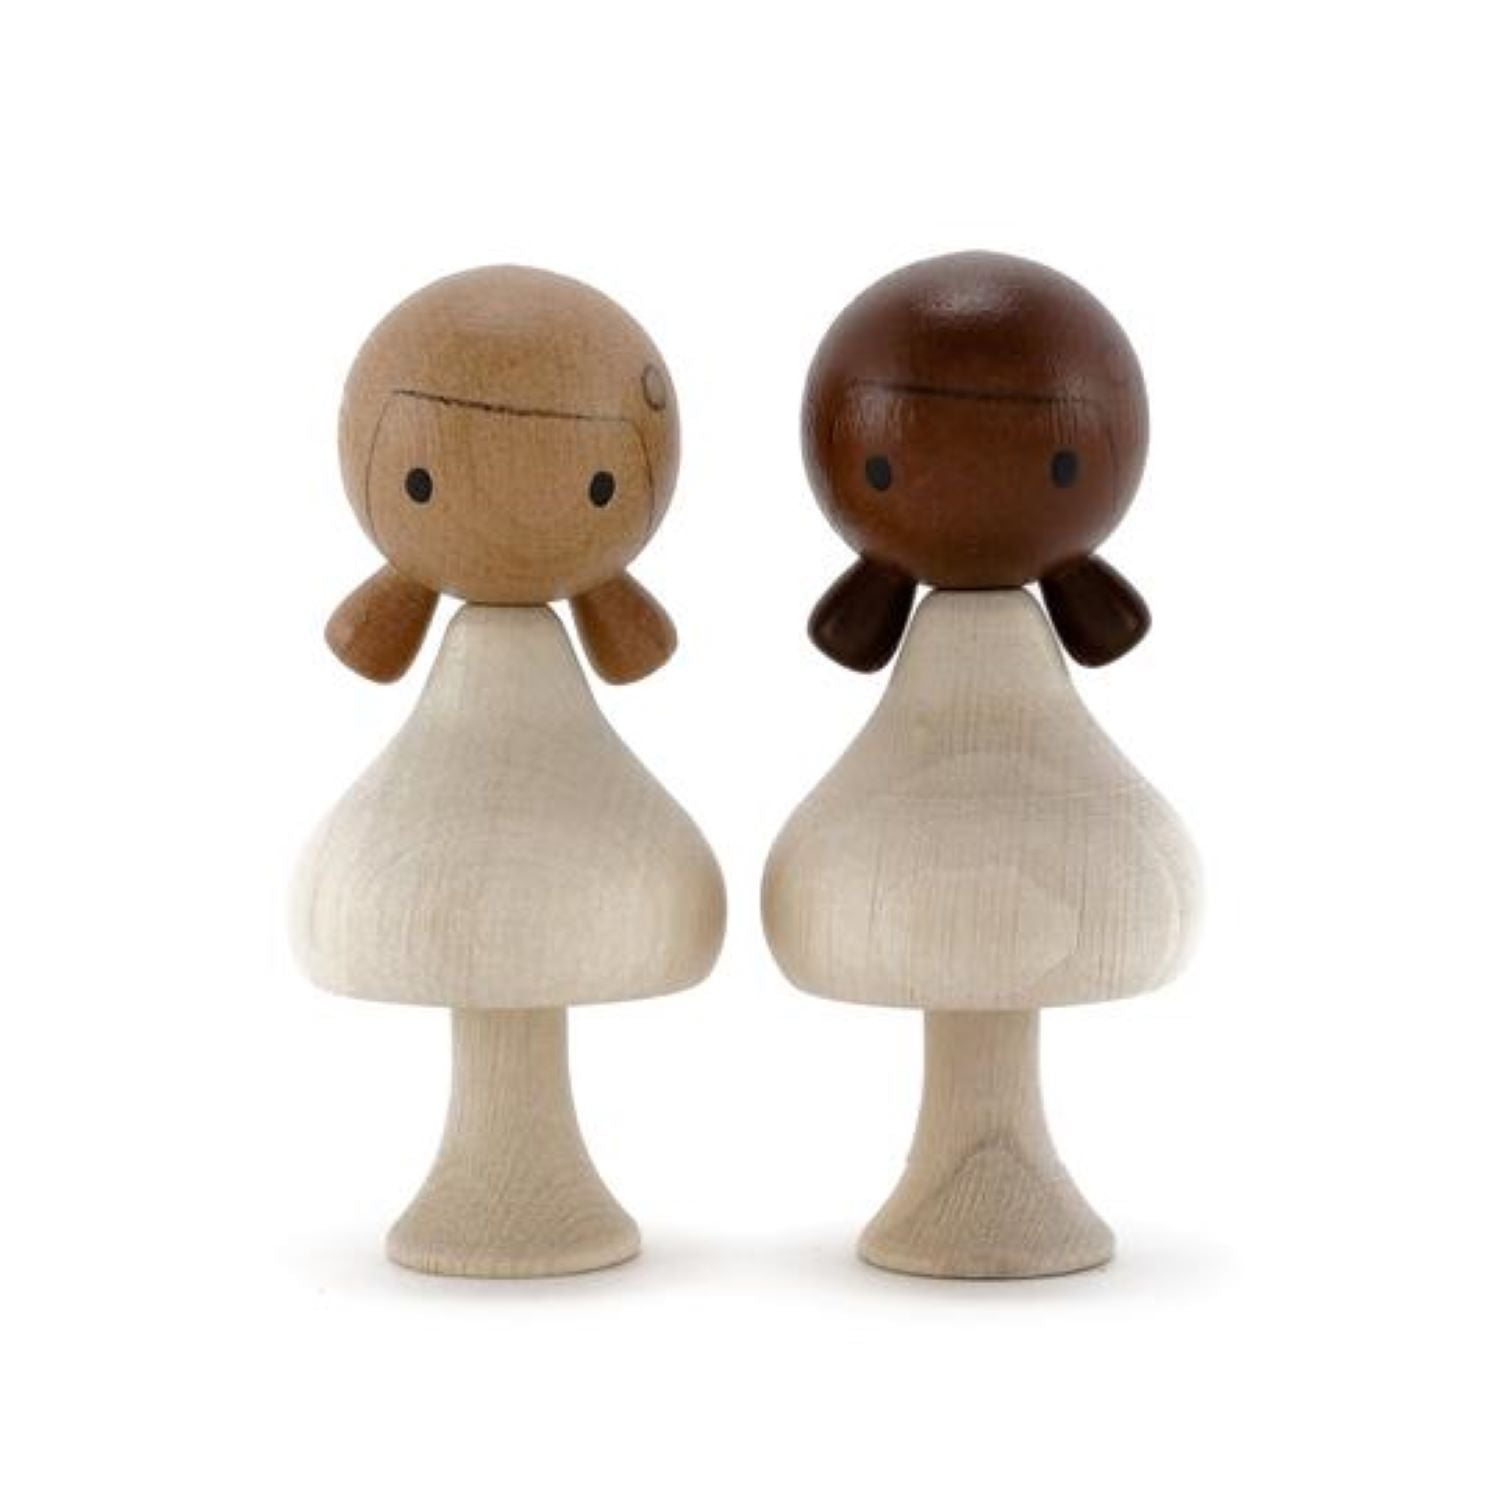 Clicques - DIY Girls Diverse Wooden Figurines